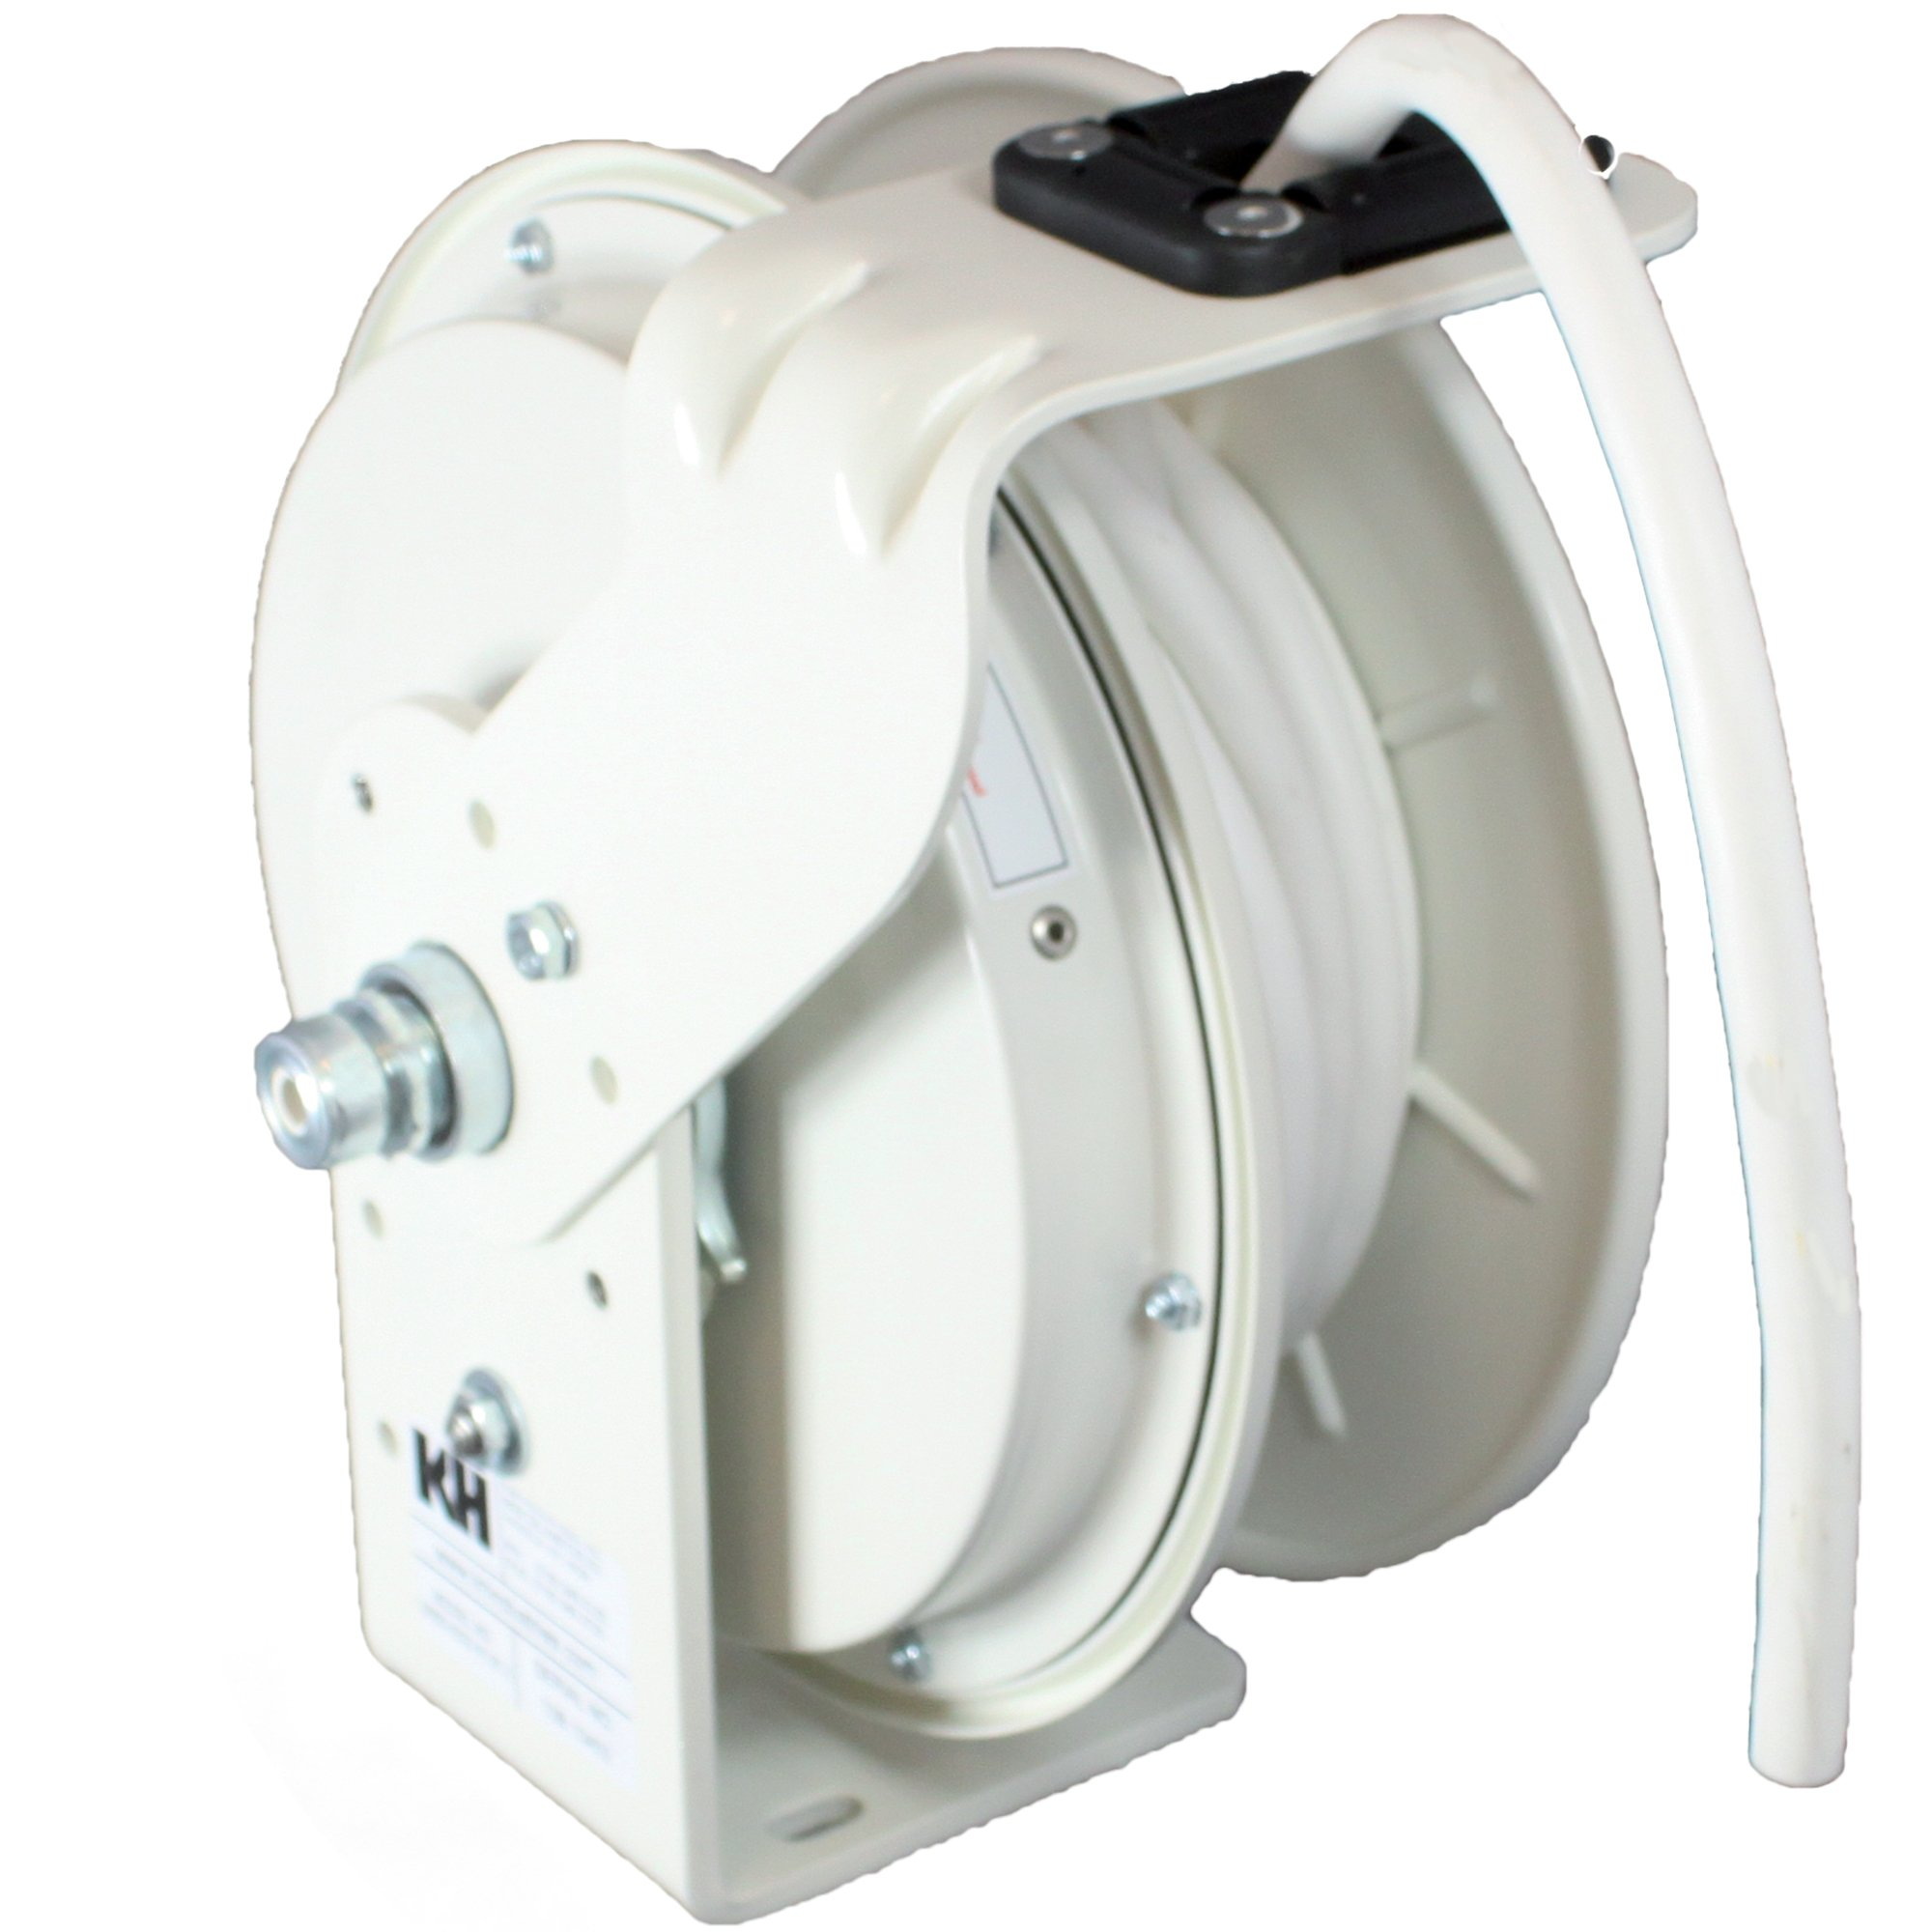 KH Industries RTB Series ReelTuff Power Cord Reel, 12/3 SJOW White Cable, 20 Amp, 25' Length, White Powder Coat Finish by KH Industries